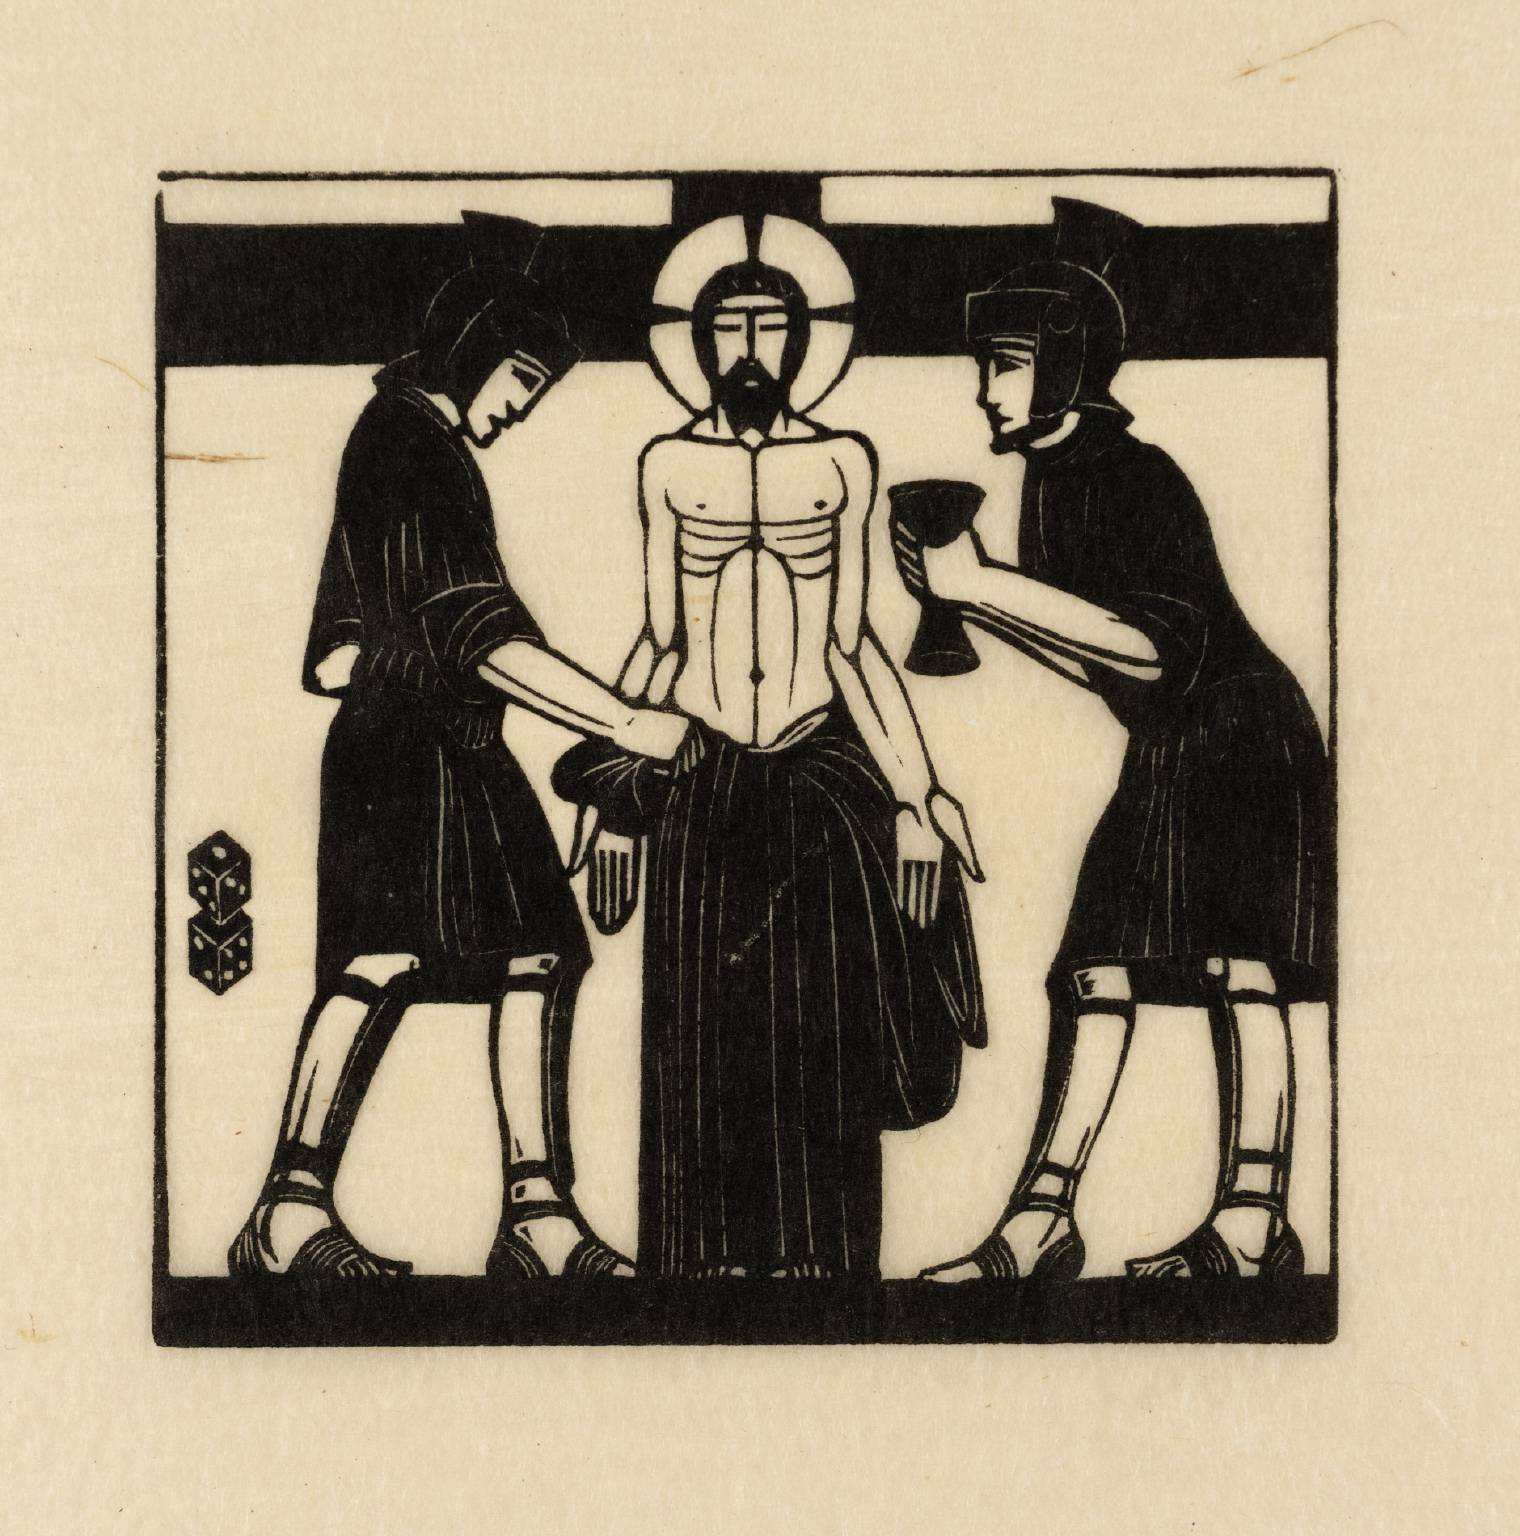 Jesus is Stripped 1917 by Eric Gill 1882-1940